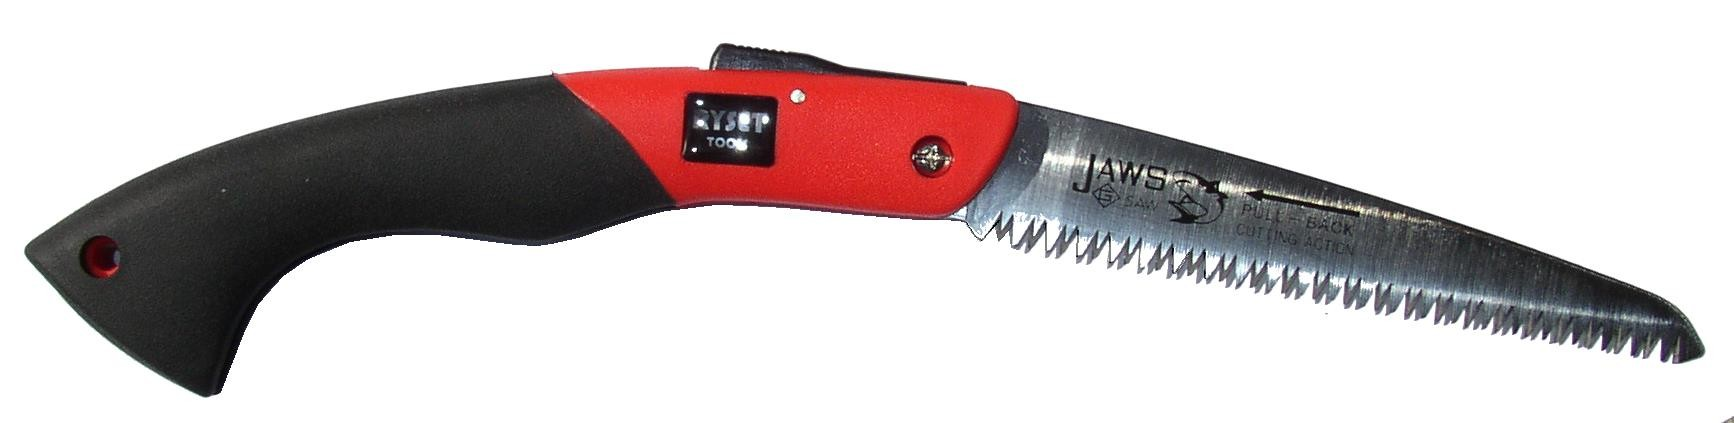 "RYSET ""JAWS"" FOLDING SAW - GD211"